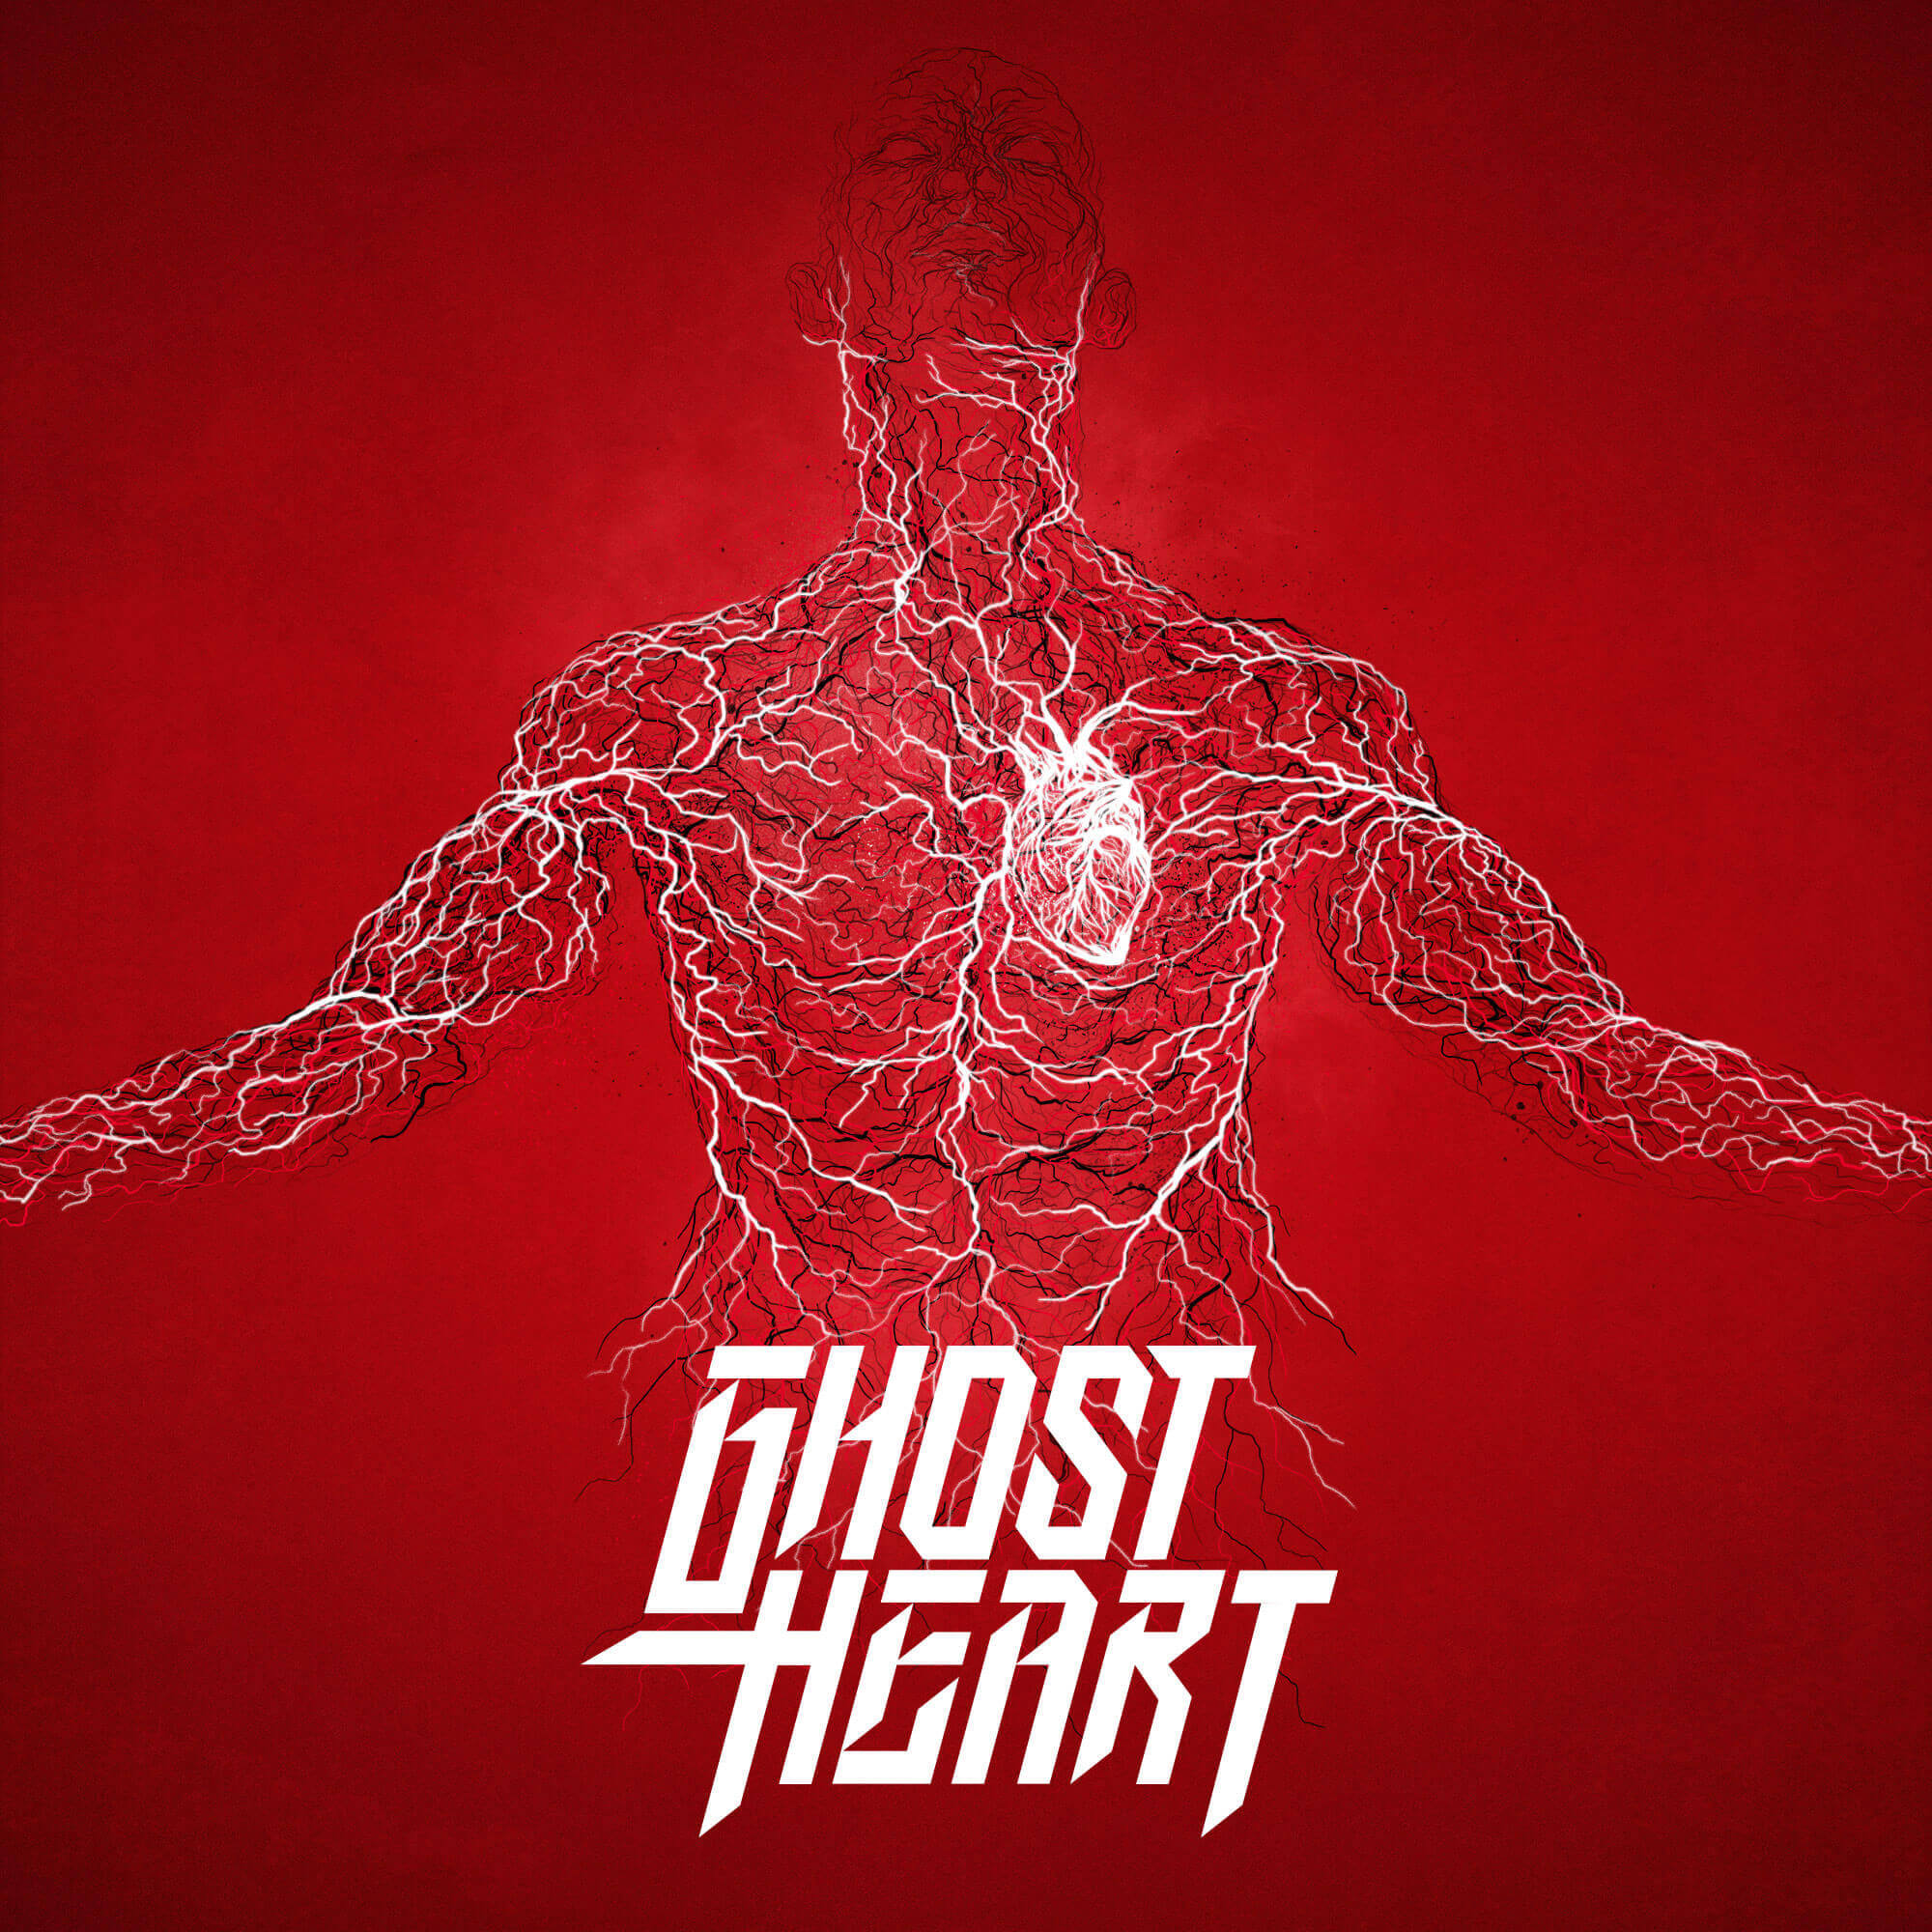 Copy of GHOST HEART